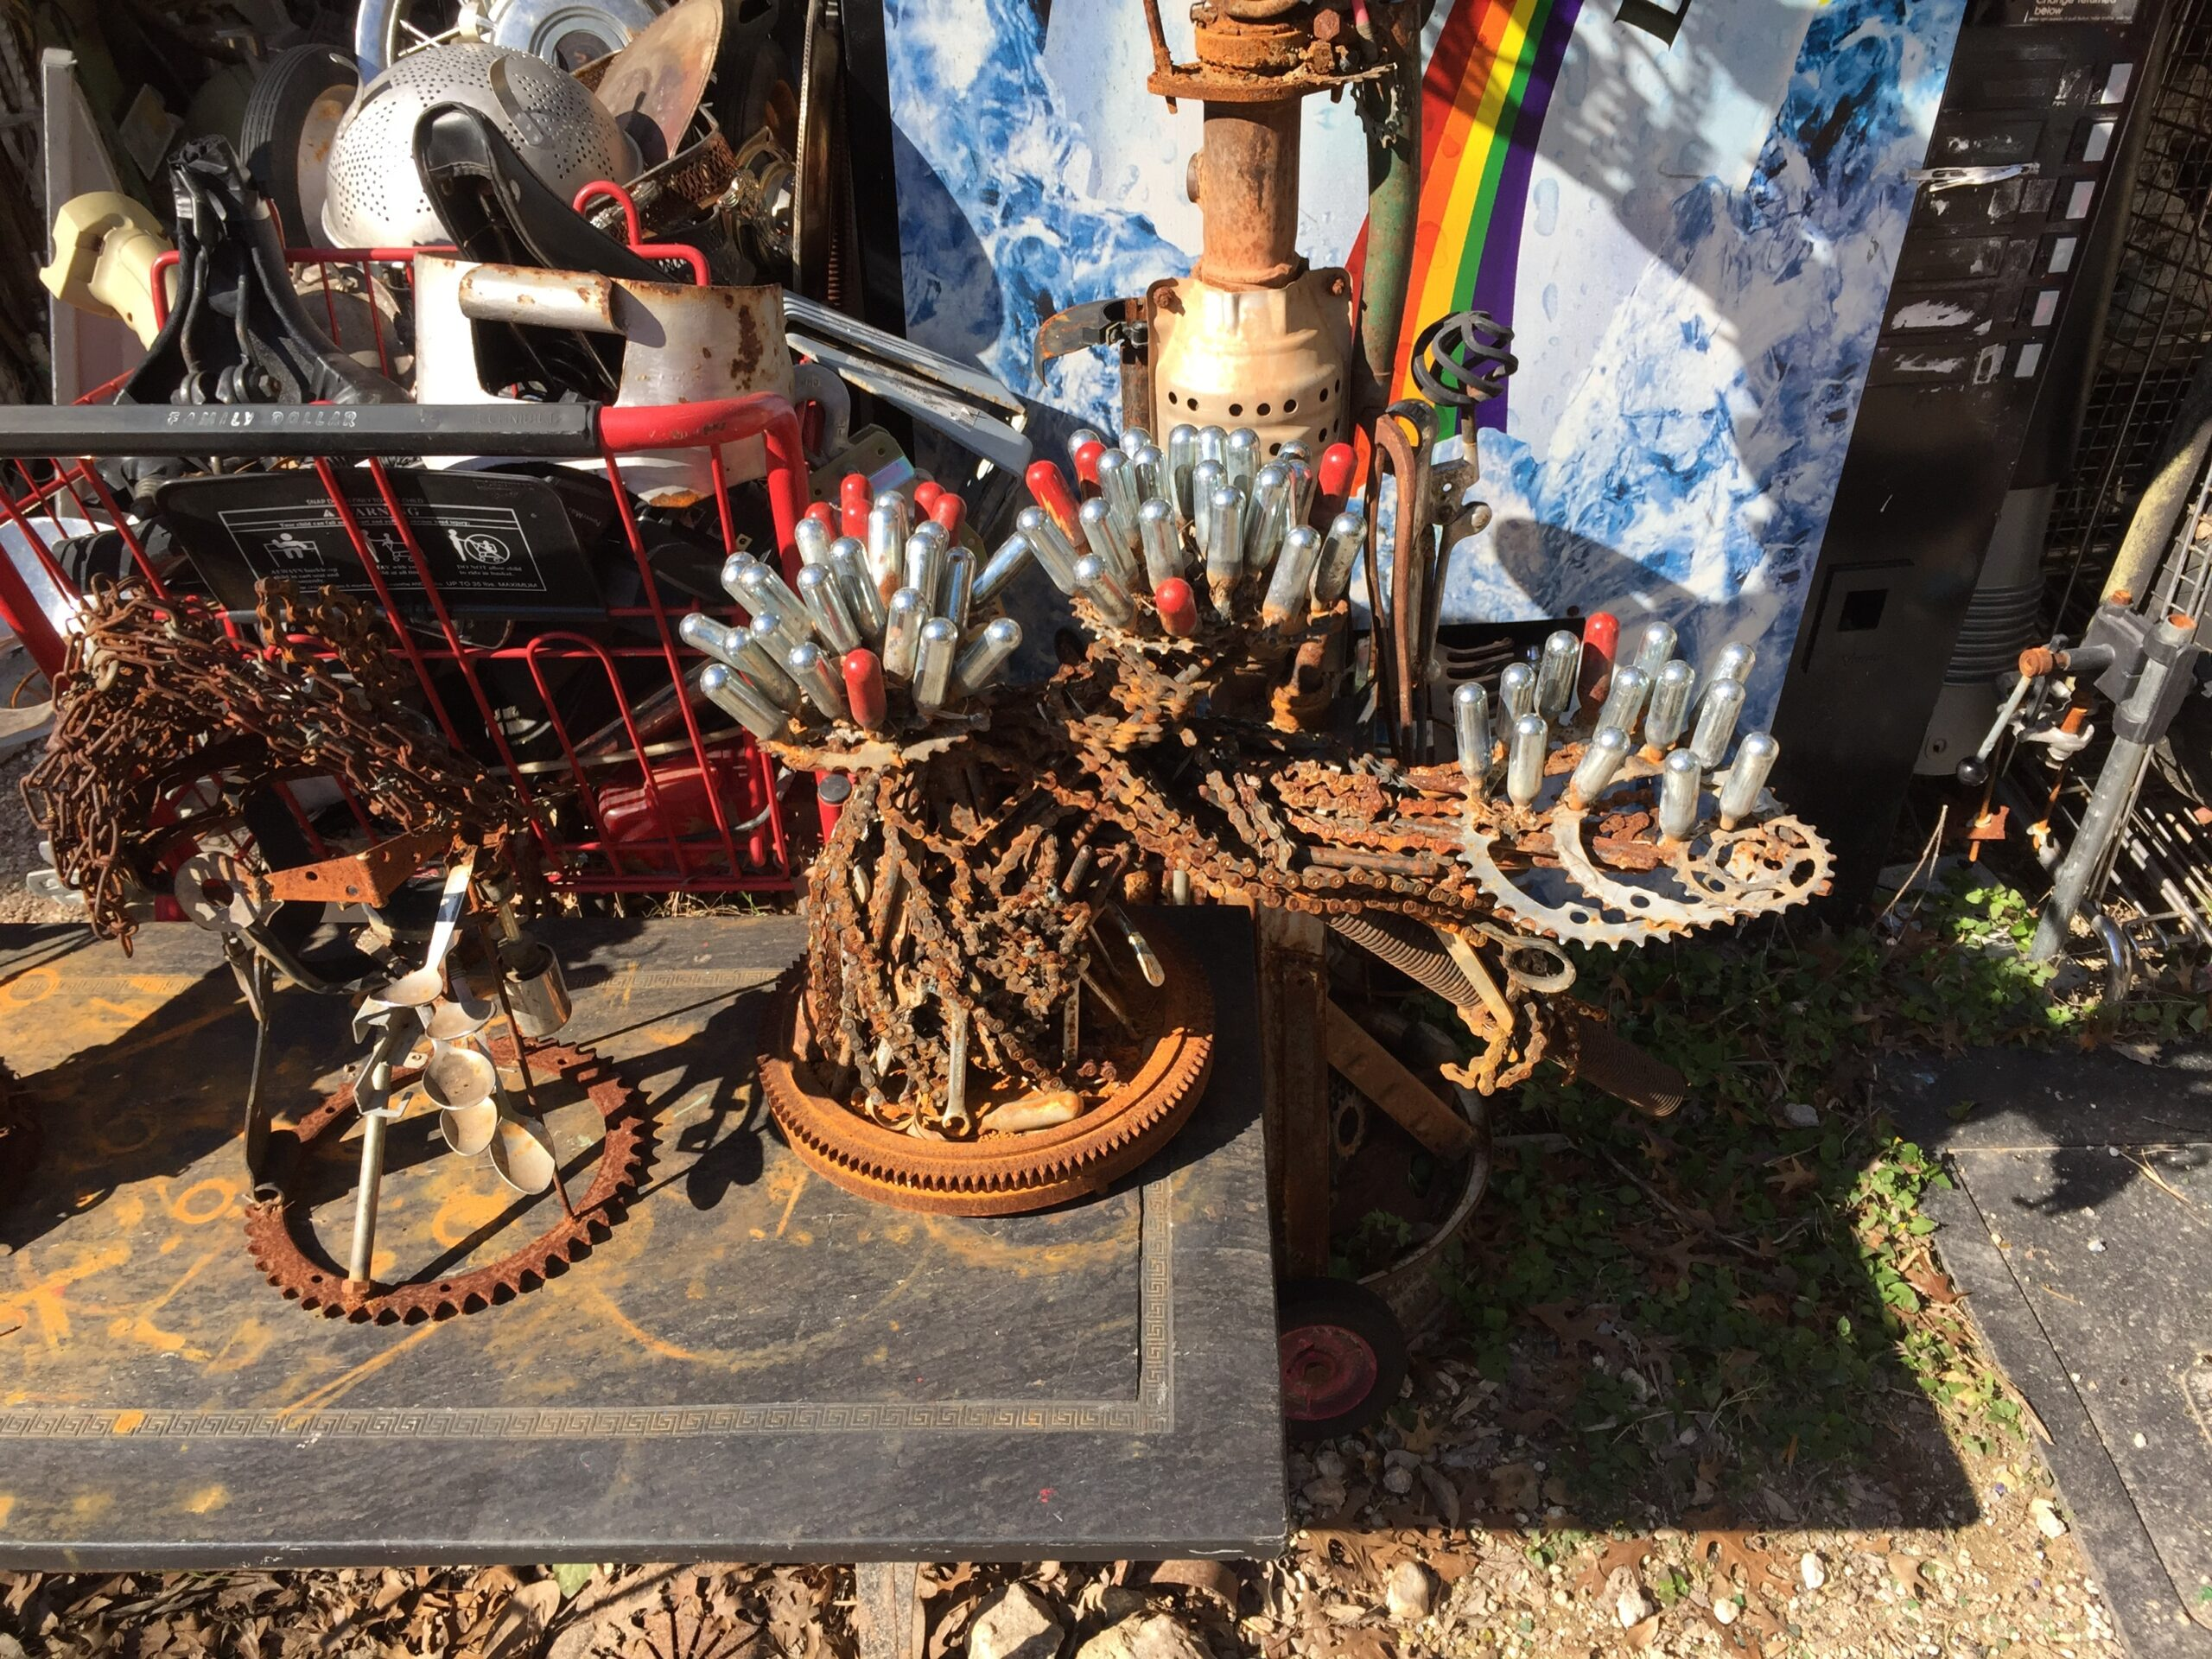 Cathedral of Junk - Metal sculptures that look like cacti